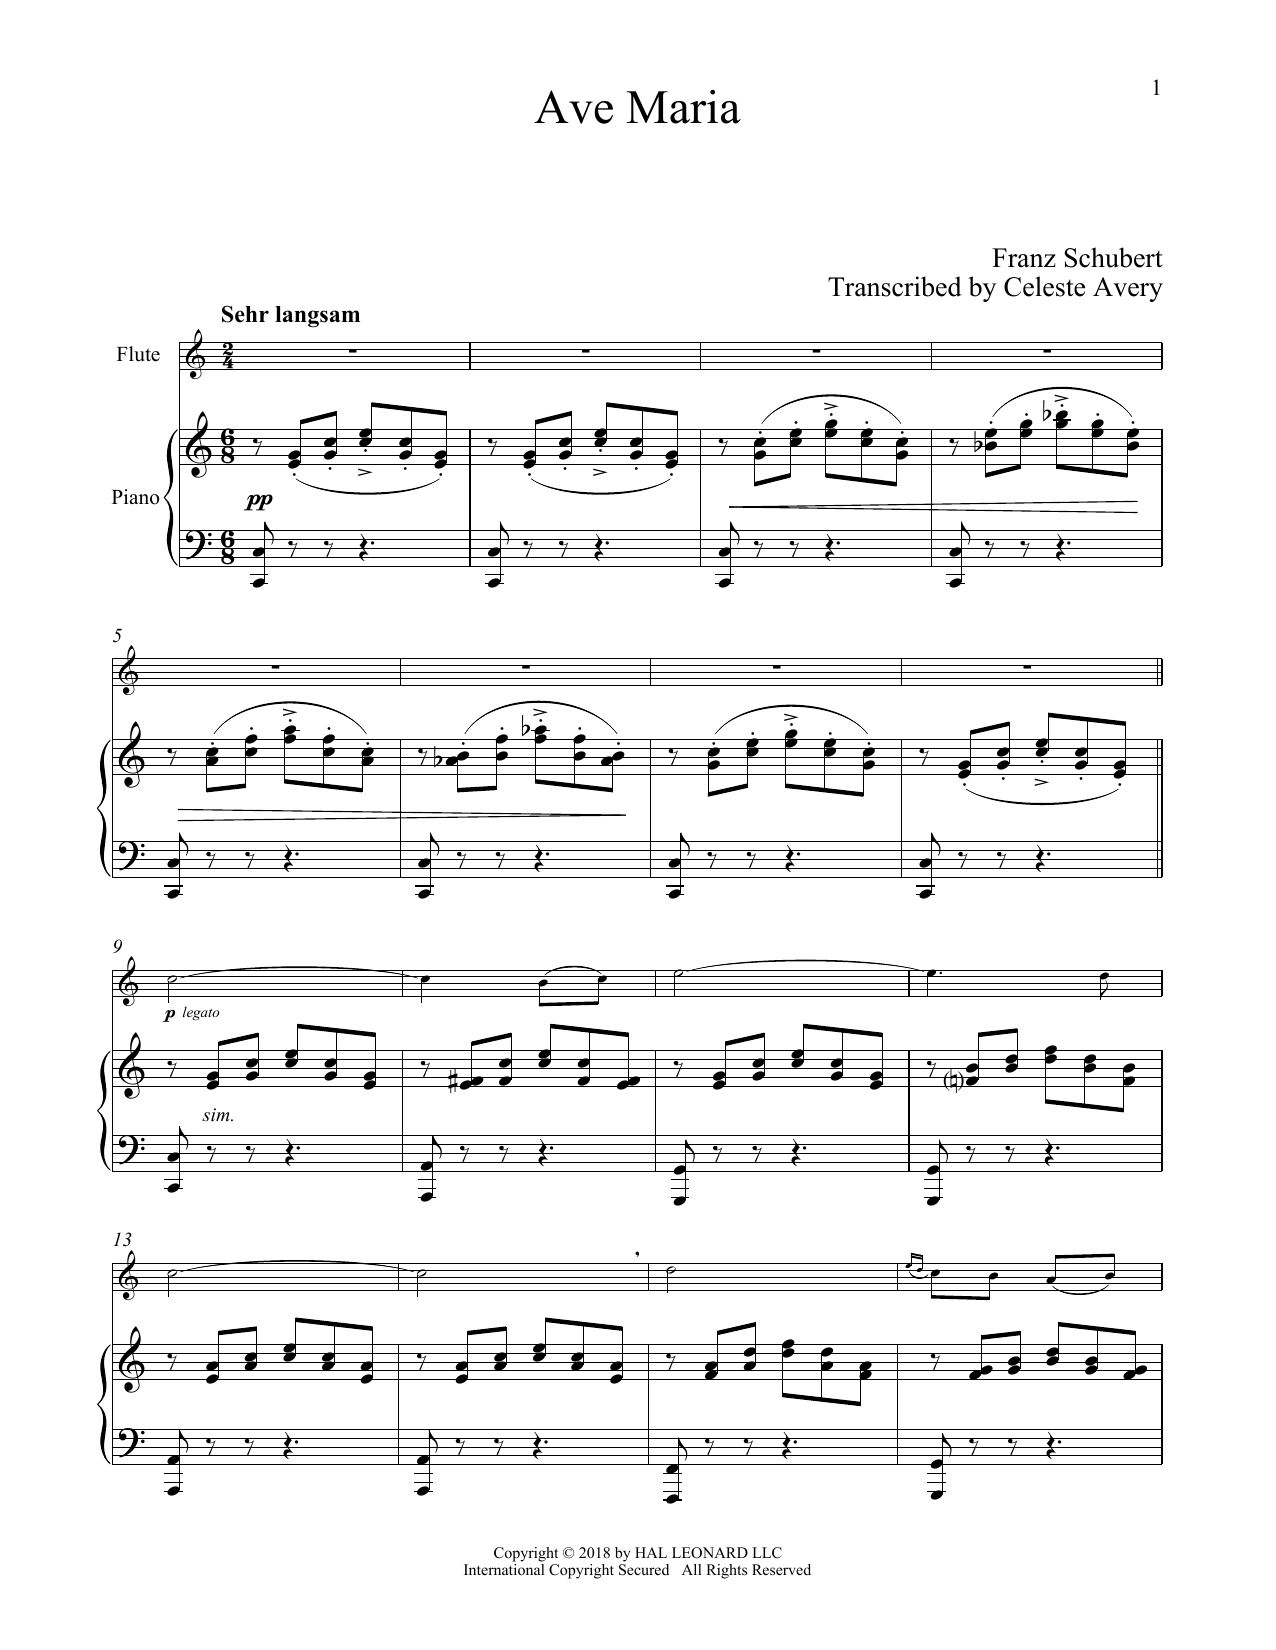 Ave Maria, Op. 52, No. 6 (Flute and Piano)